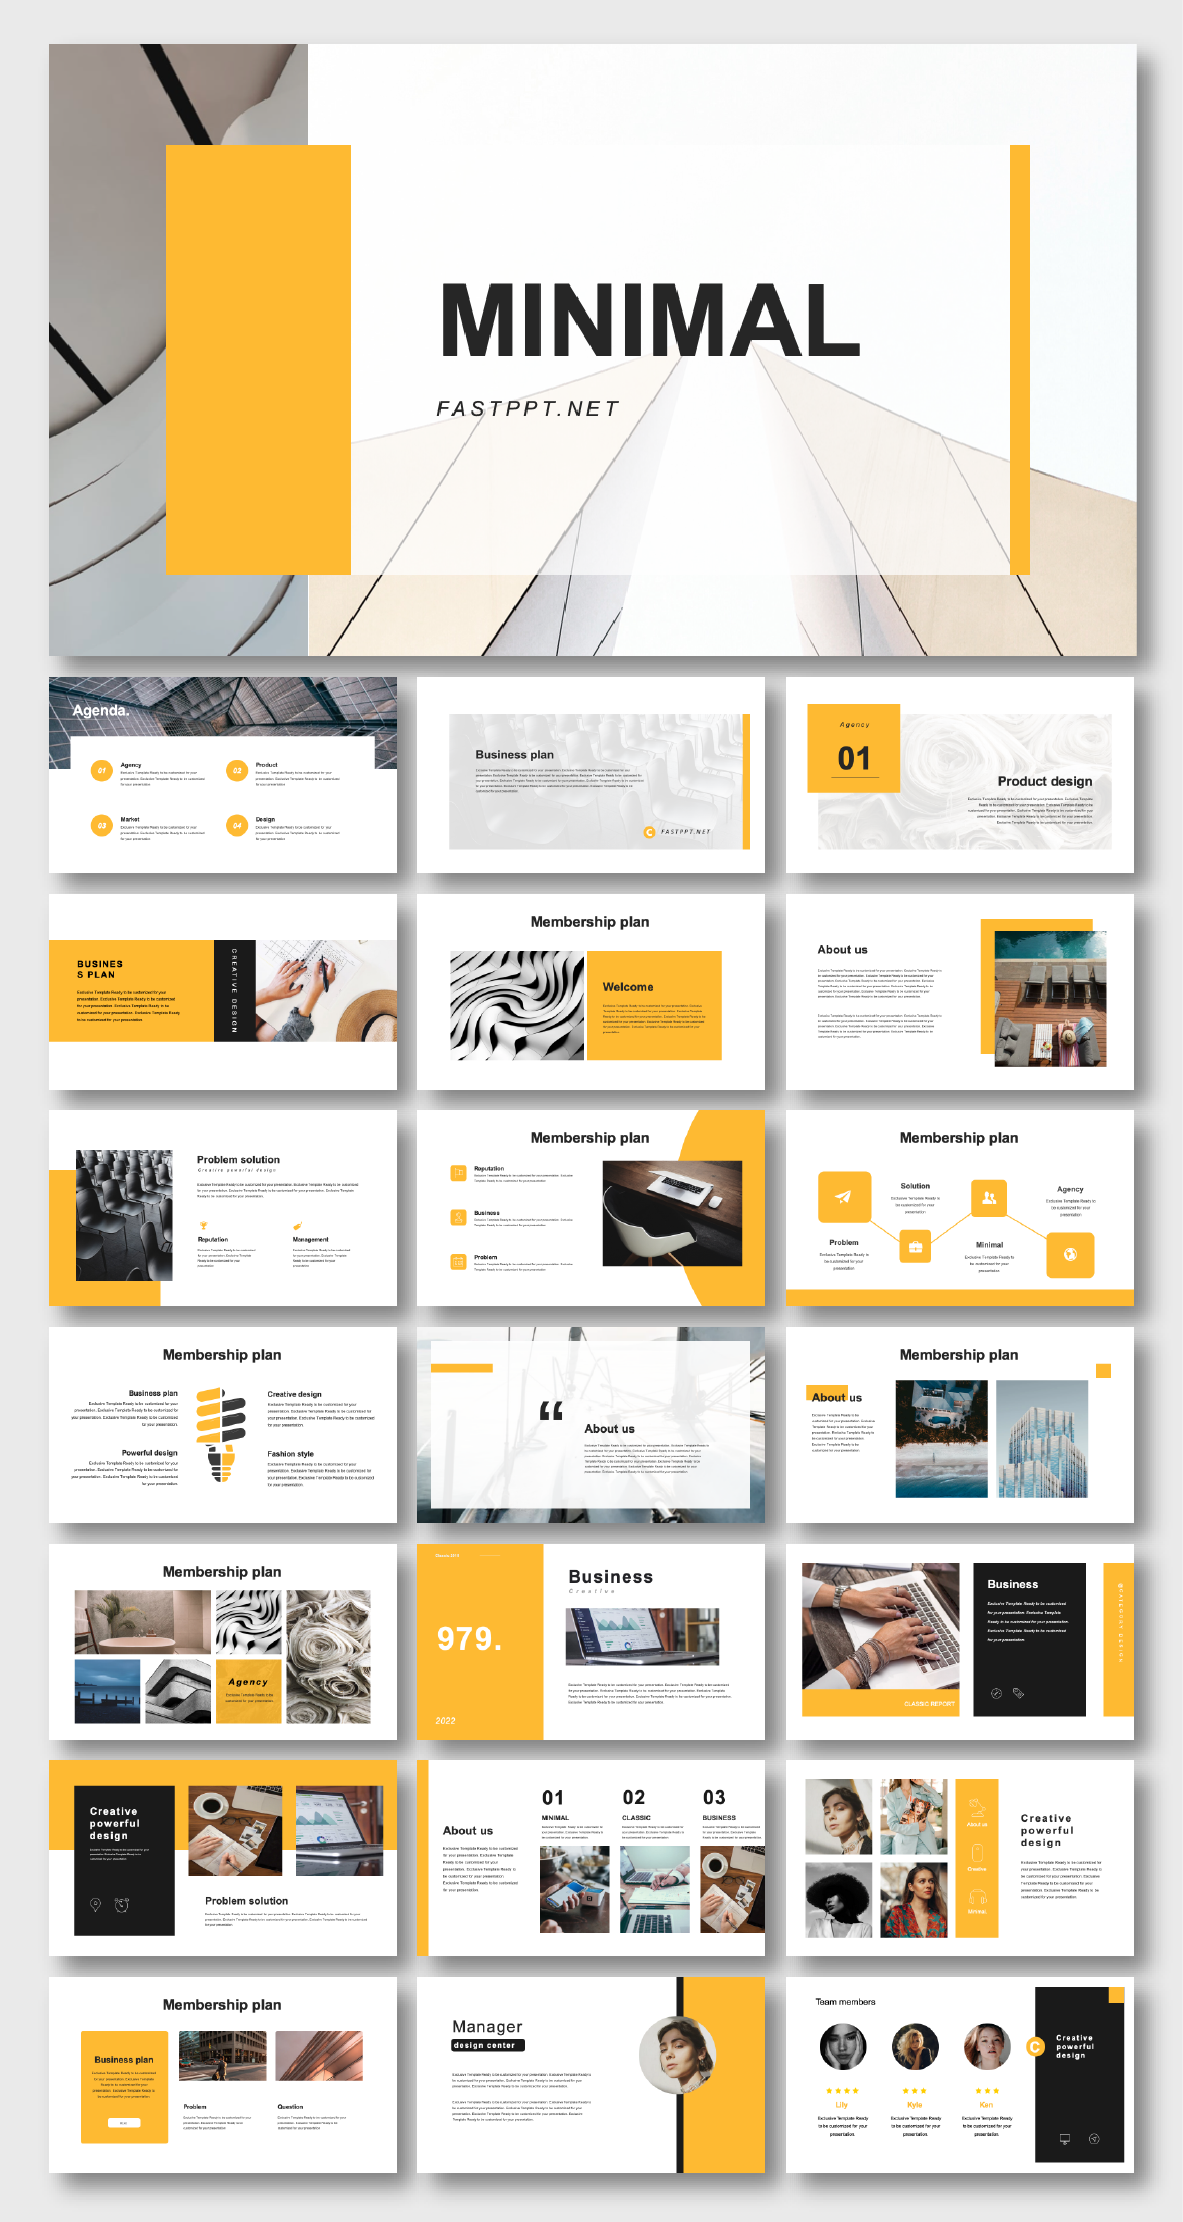 Clean Business Introduction Powerpoint Template Original And High Quality Powerpoint Templates Powerpoint Presentation Design Presentation Design Layout Portfolio Design Layout